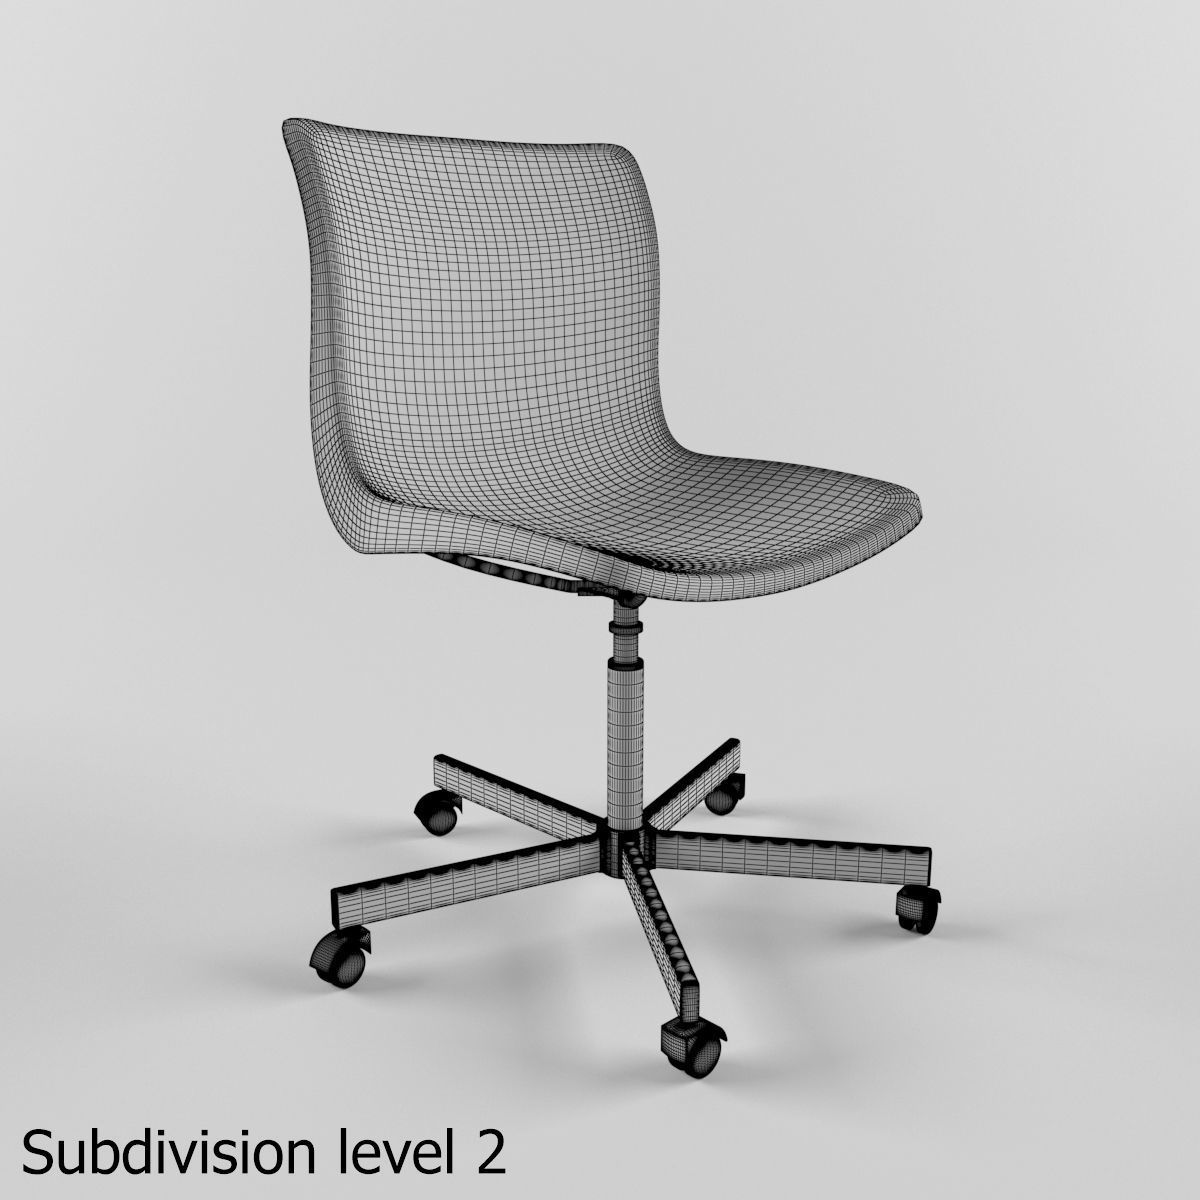 ... Ikea Snille Chair 3d Model Max Obj Mtl Fbx 3 ...